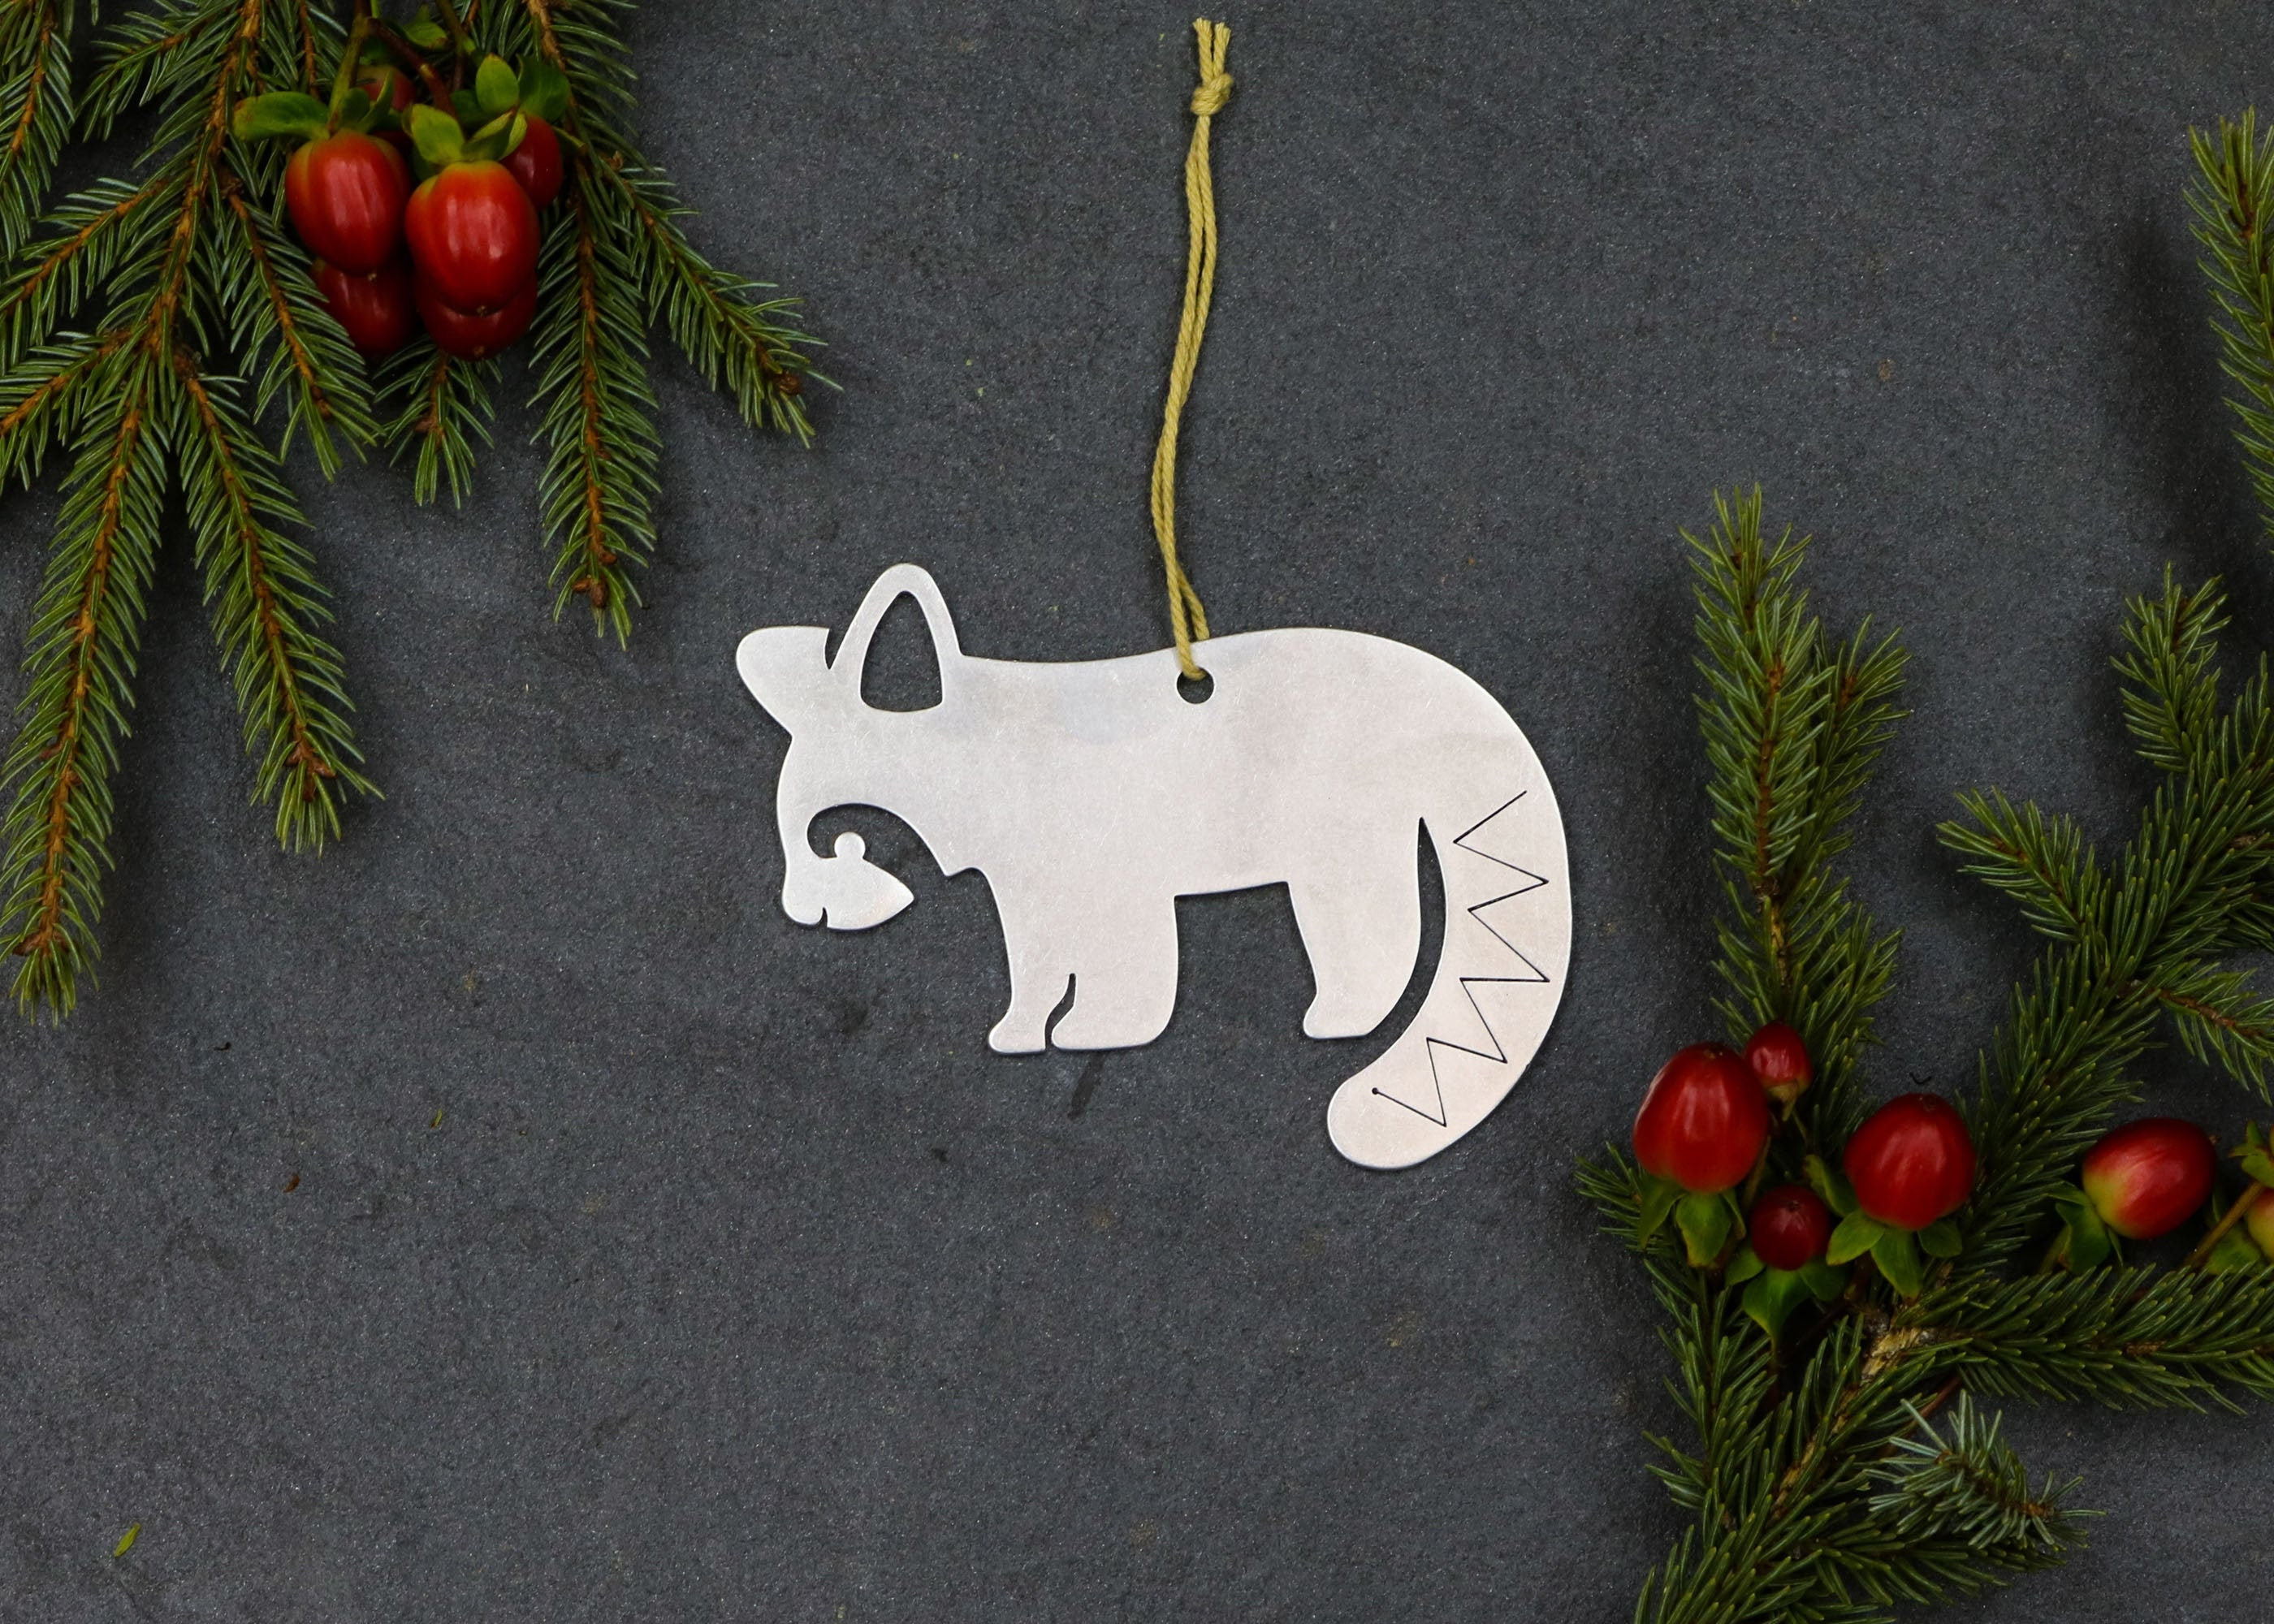 Red Panda Raccoon Christmas Ornament Custom Gift For Her Him Personalized Wedding Favor Asia Wildlife Zoo Home Holiday Decor Thanksgiving